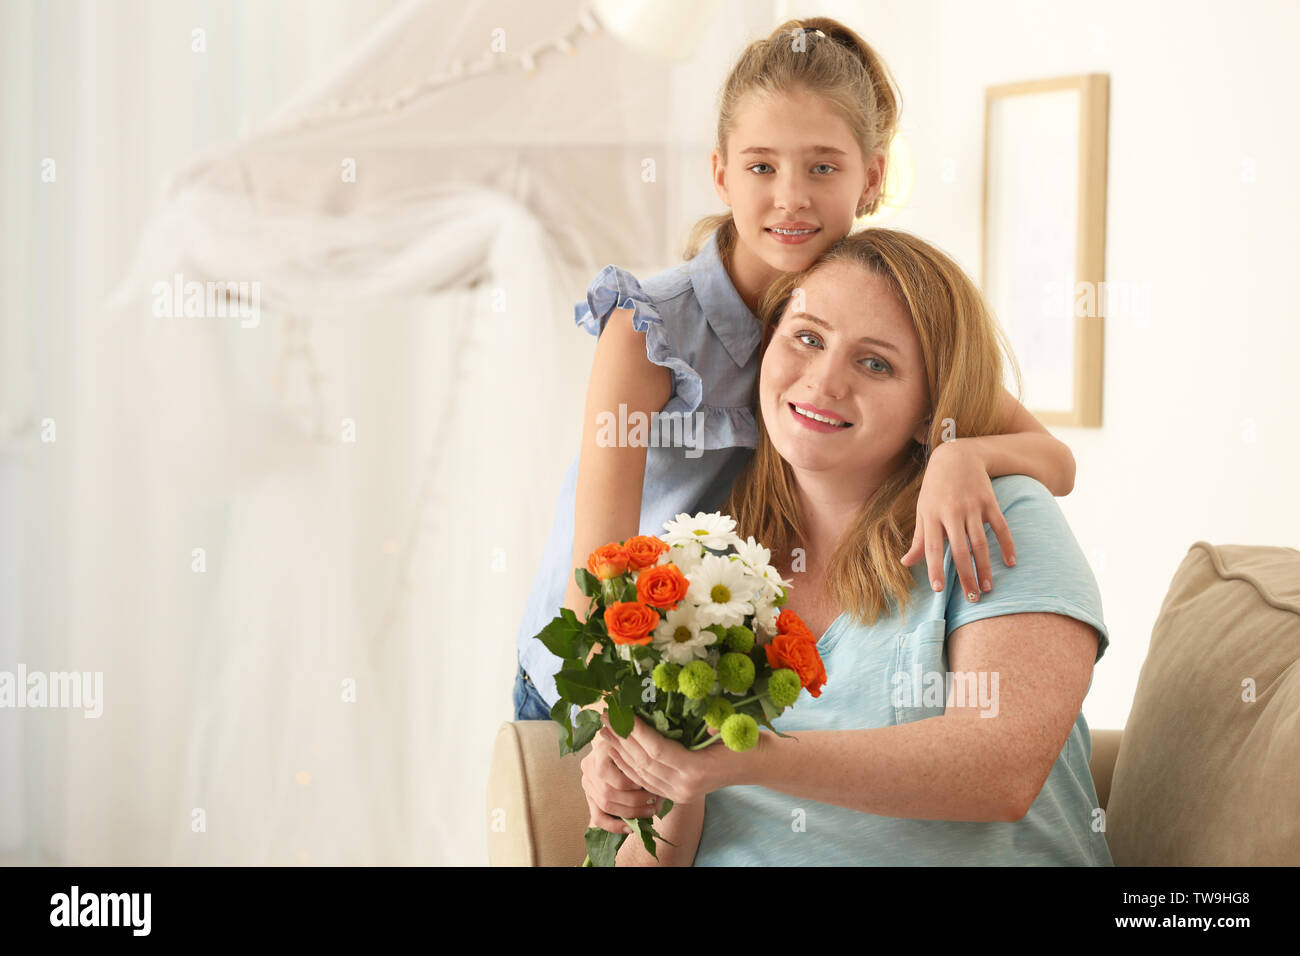 Portrait of happy mother and daughter with bouquet of flowers at home - Stock Image